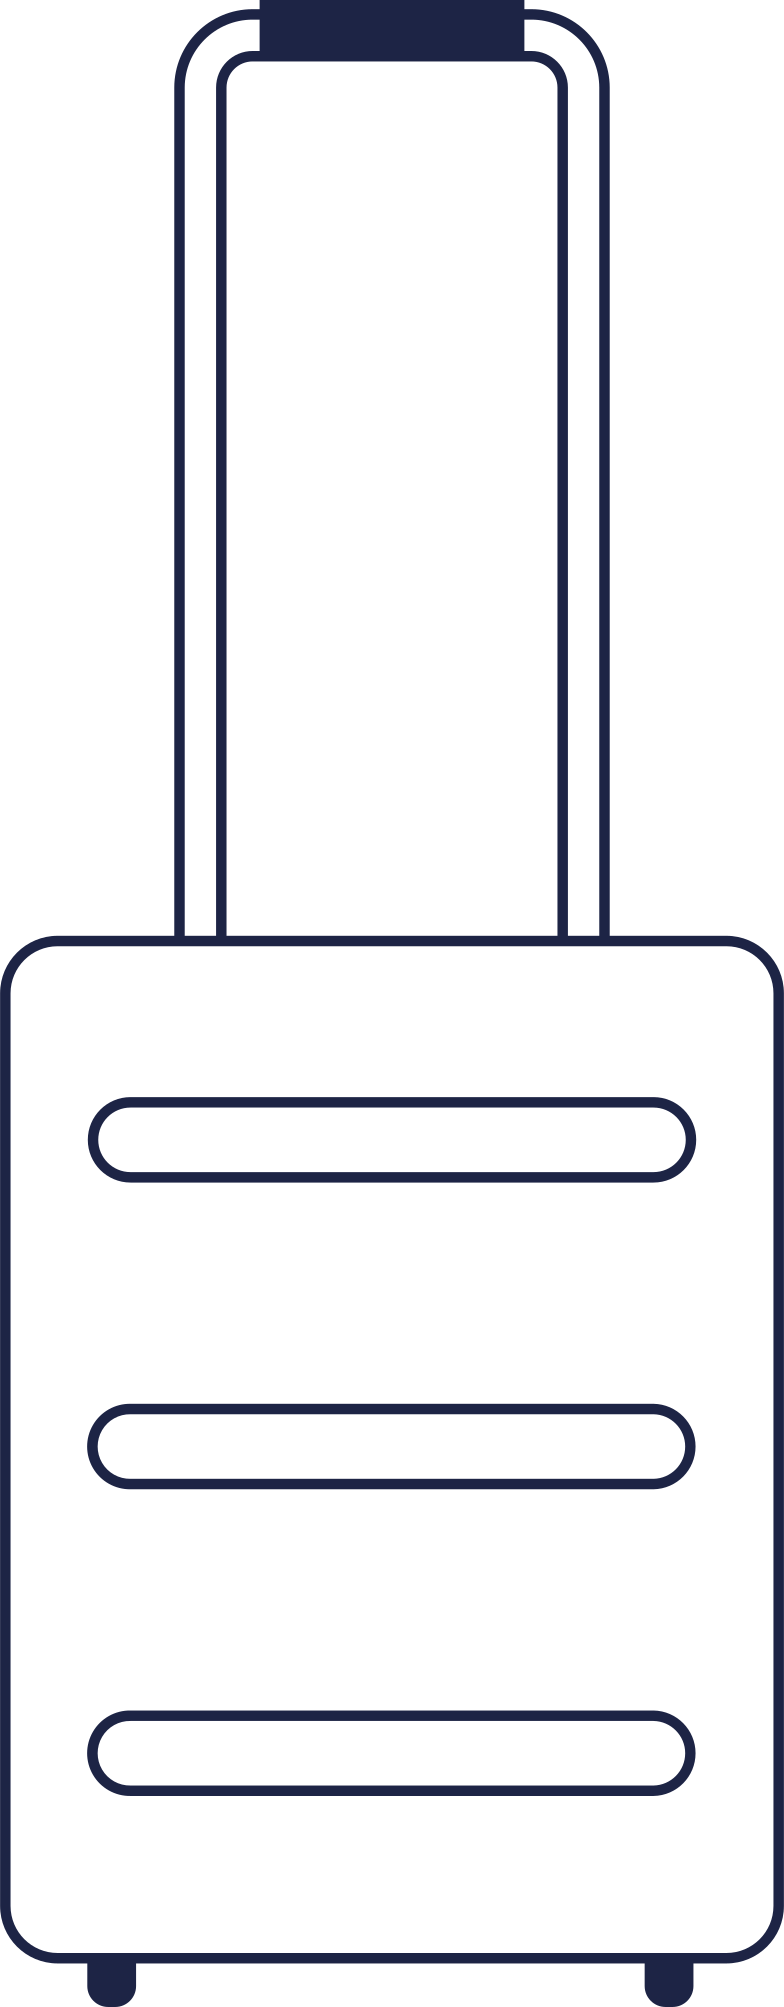 style case Vector images in PNG and SVG | Icons8 Illustrations